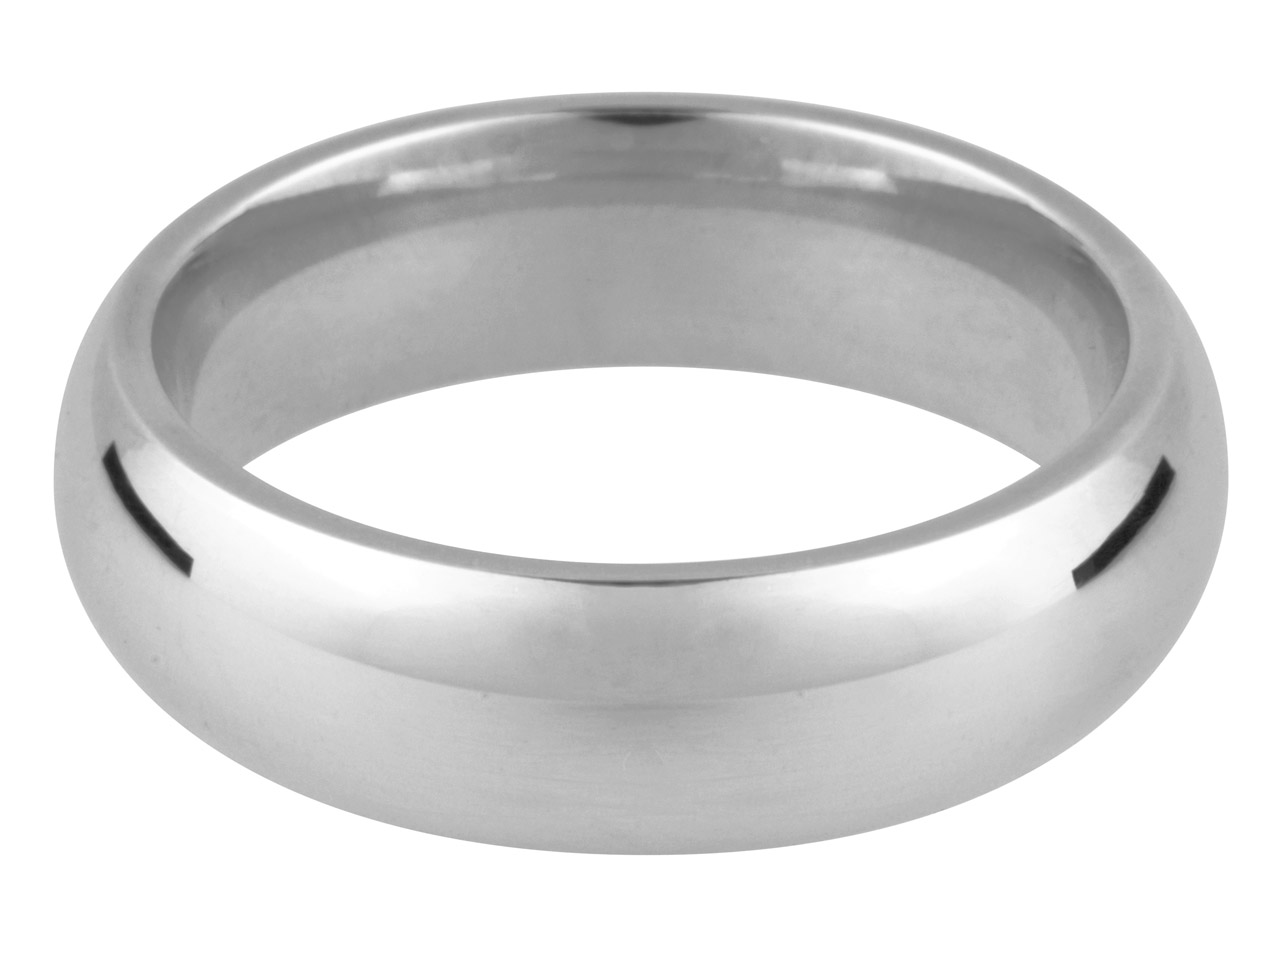 18ct White Gold Court Wedding Ring 6.0mm, Size W, 7.6g Light Weight,  Hallmarked, Wall Thickness 1.48mm, 100% Recycled Gold